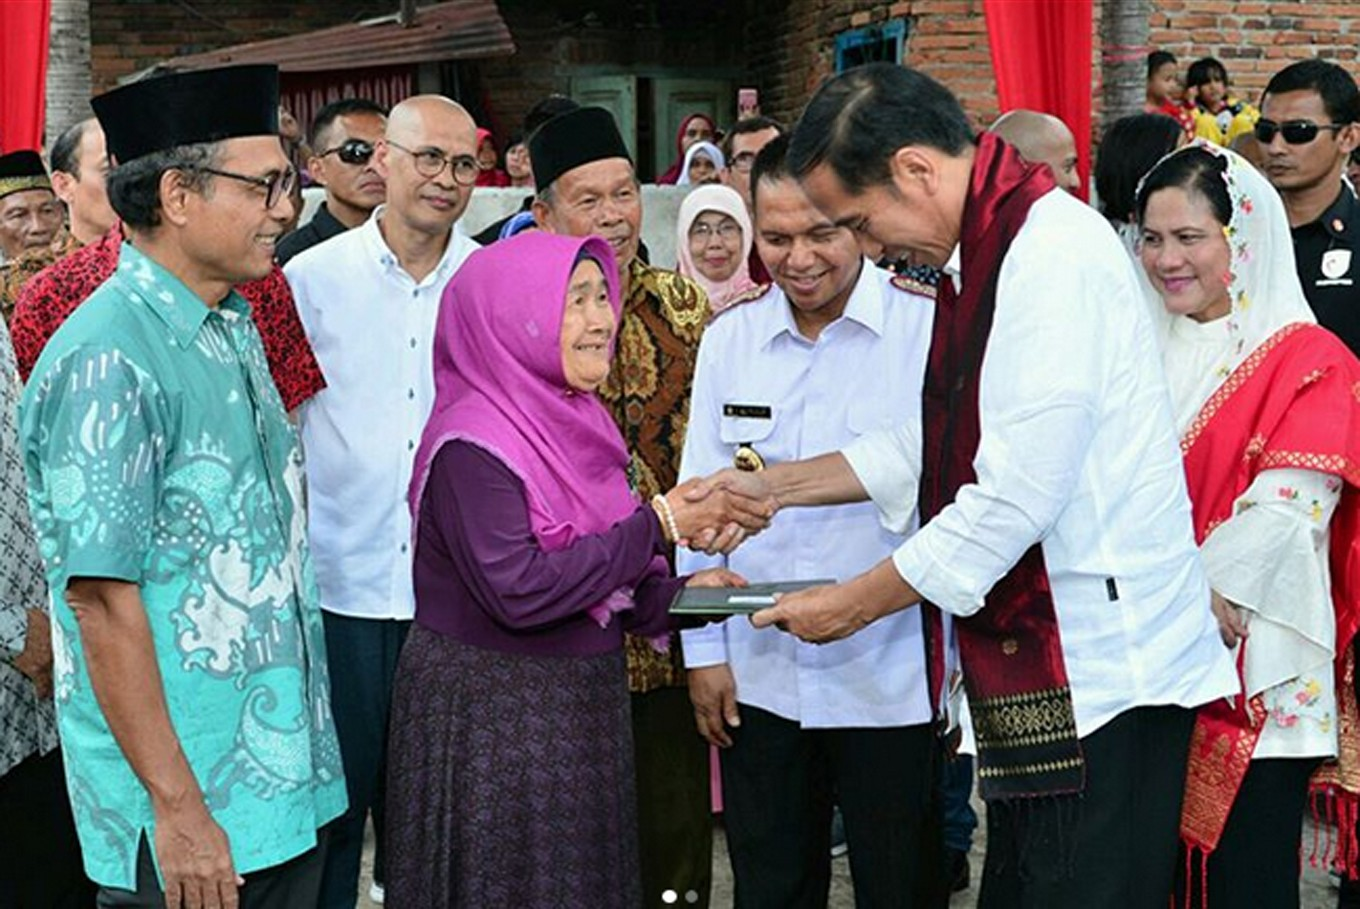 Jokowi pays homage to Indonesian press pioneer during West Sumatra trip